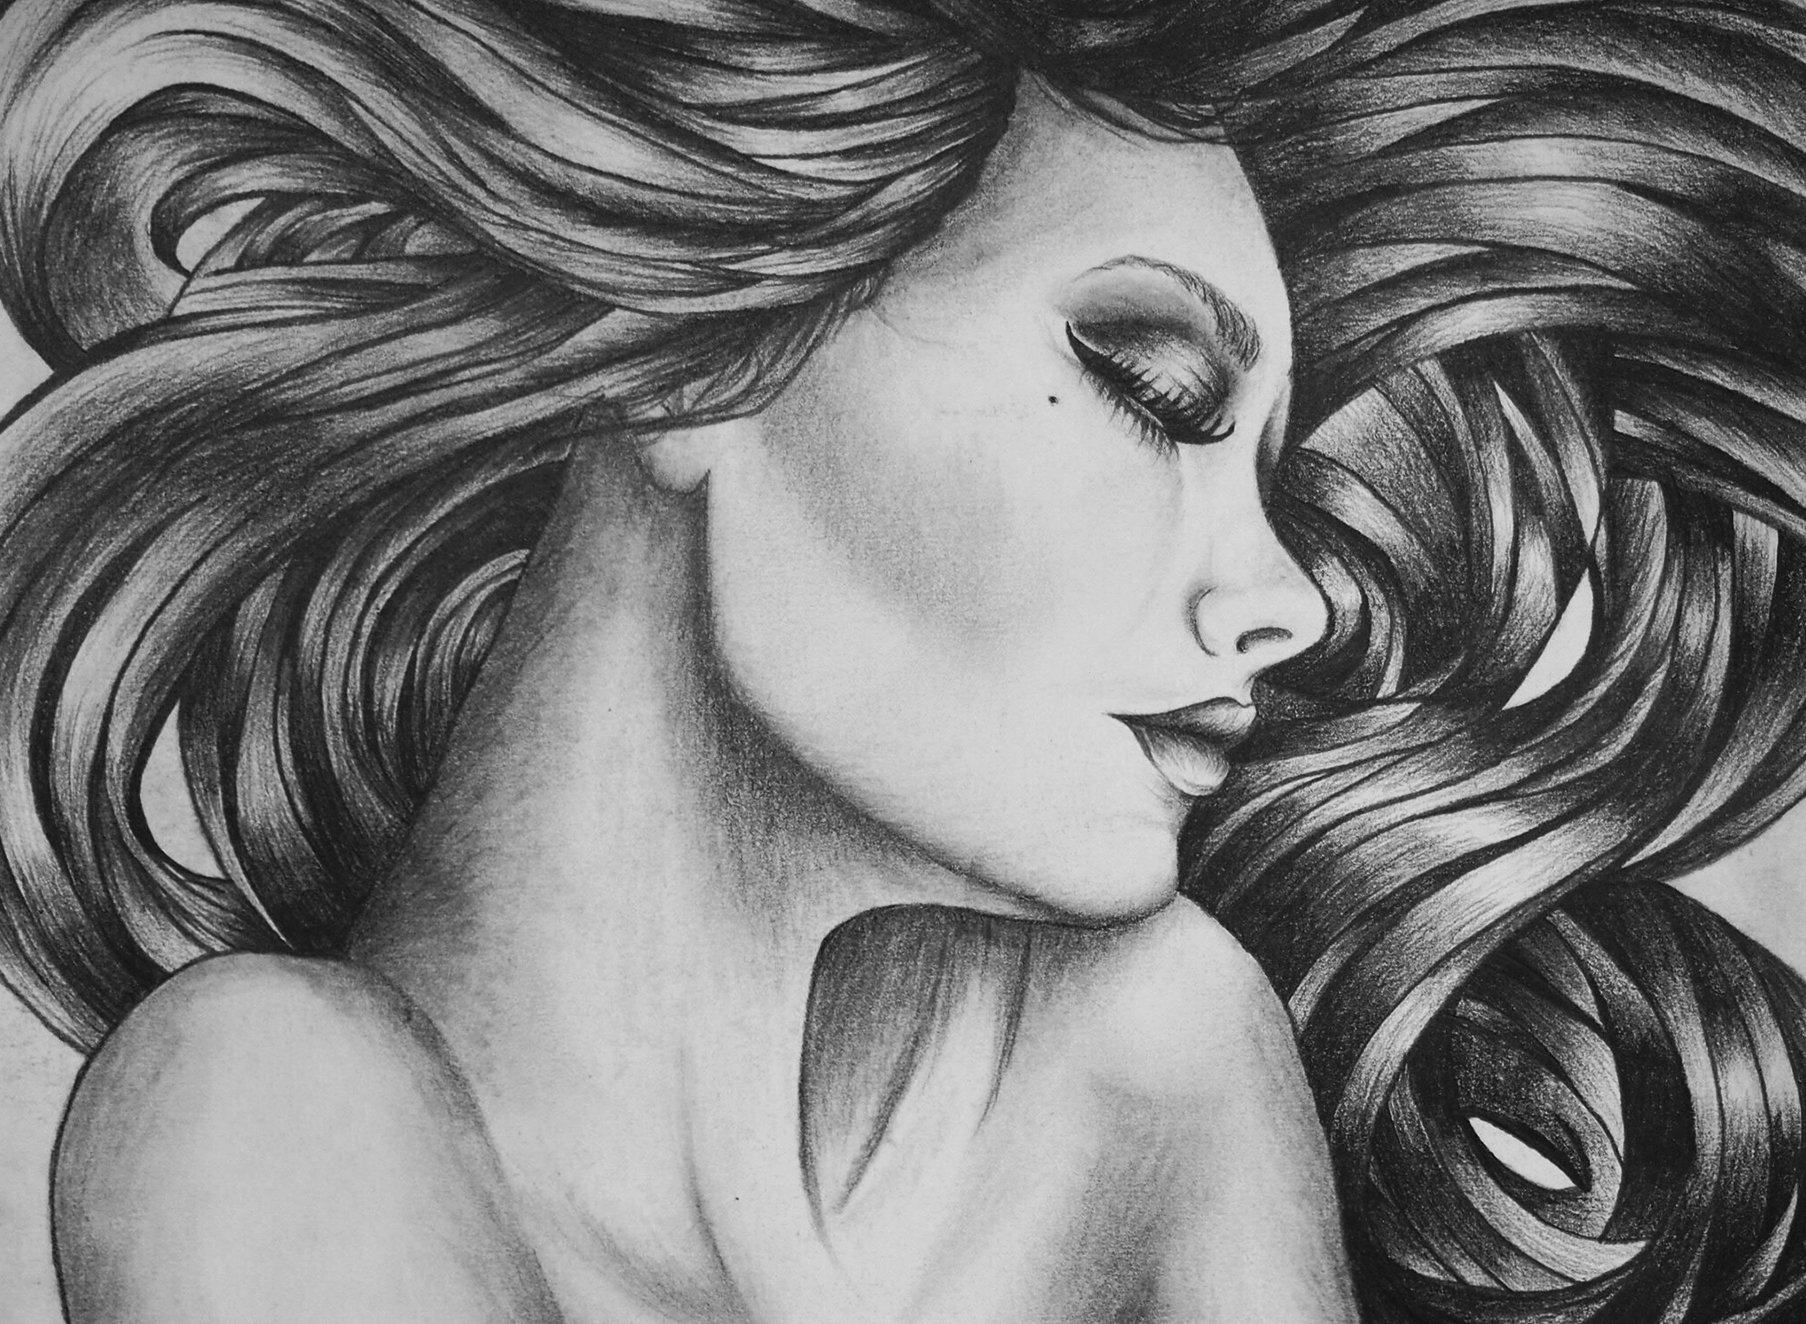 Pencil Drawing - Illustration - Folio